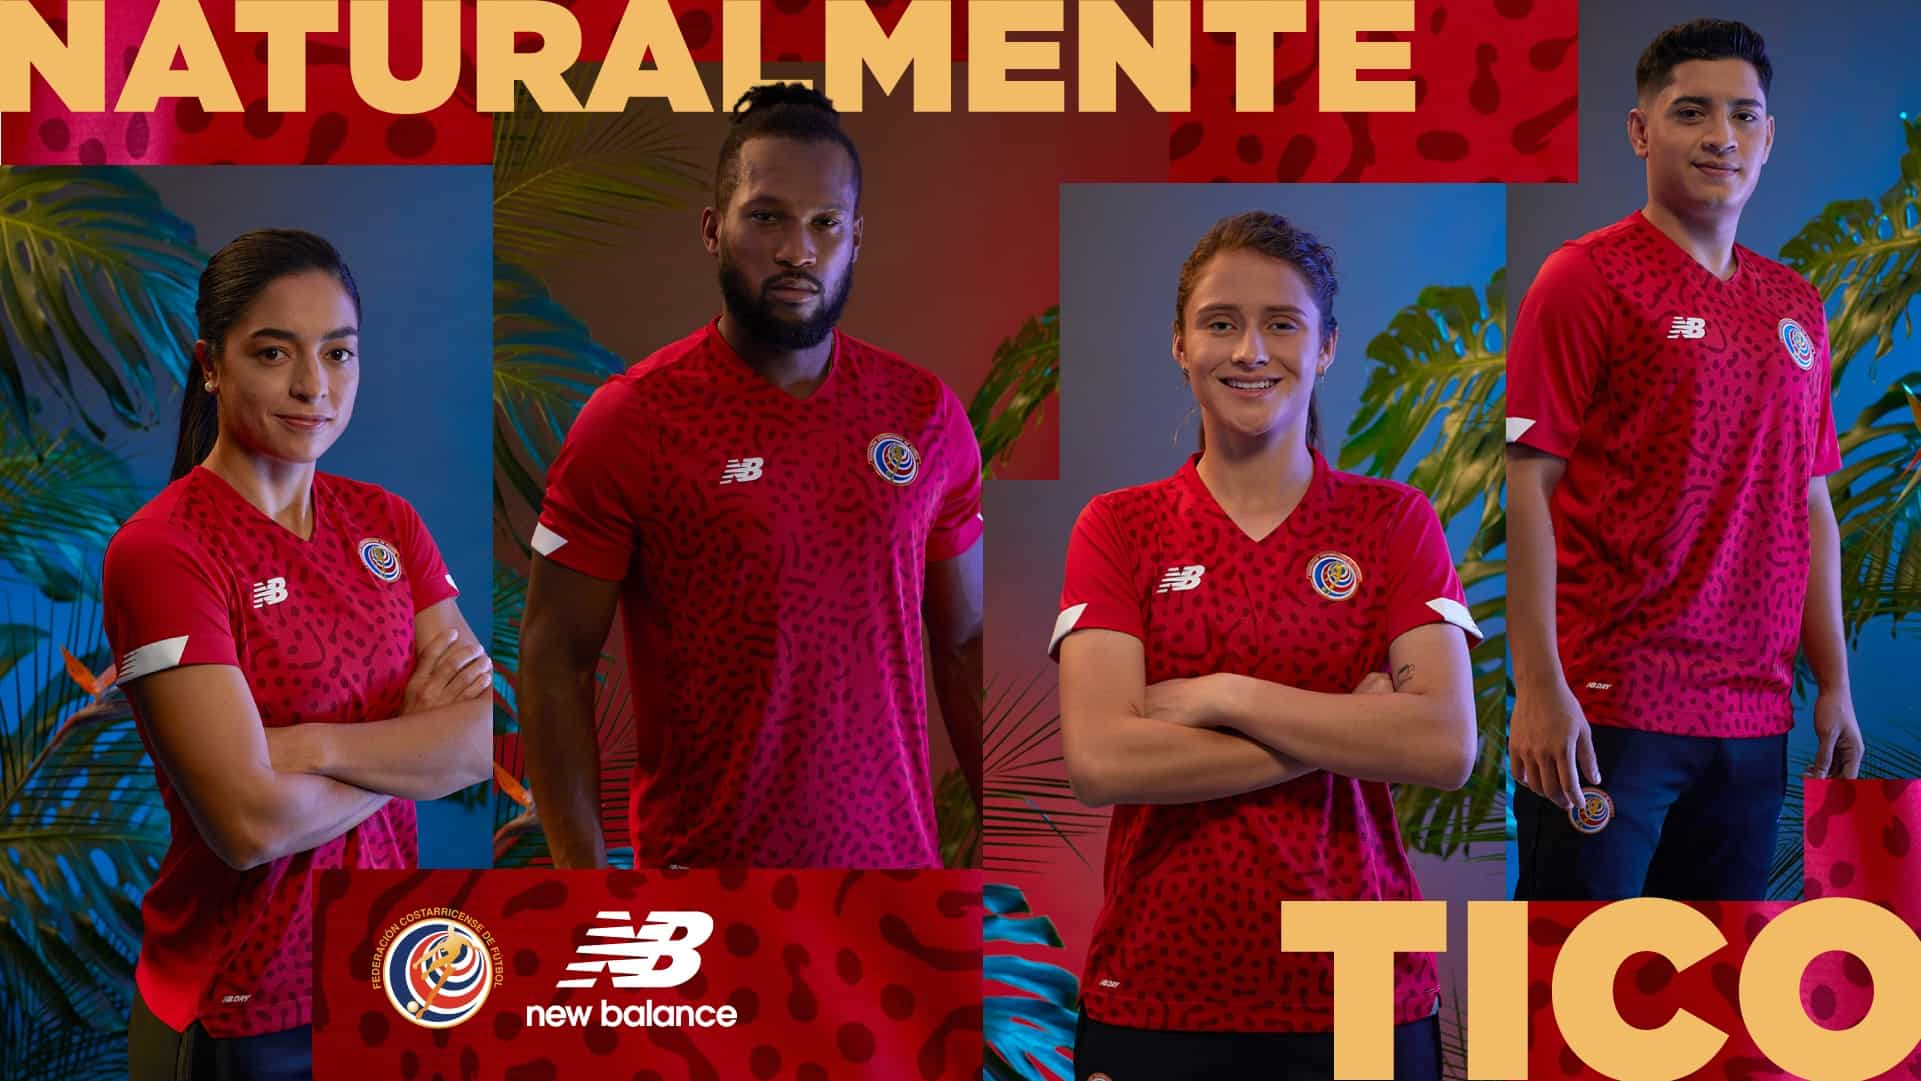 Costa Rica's new soccer uniforms were unveiled on December 10, 2020.